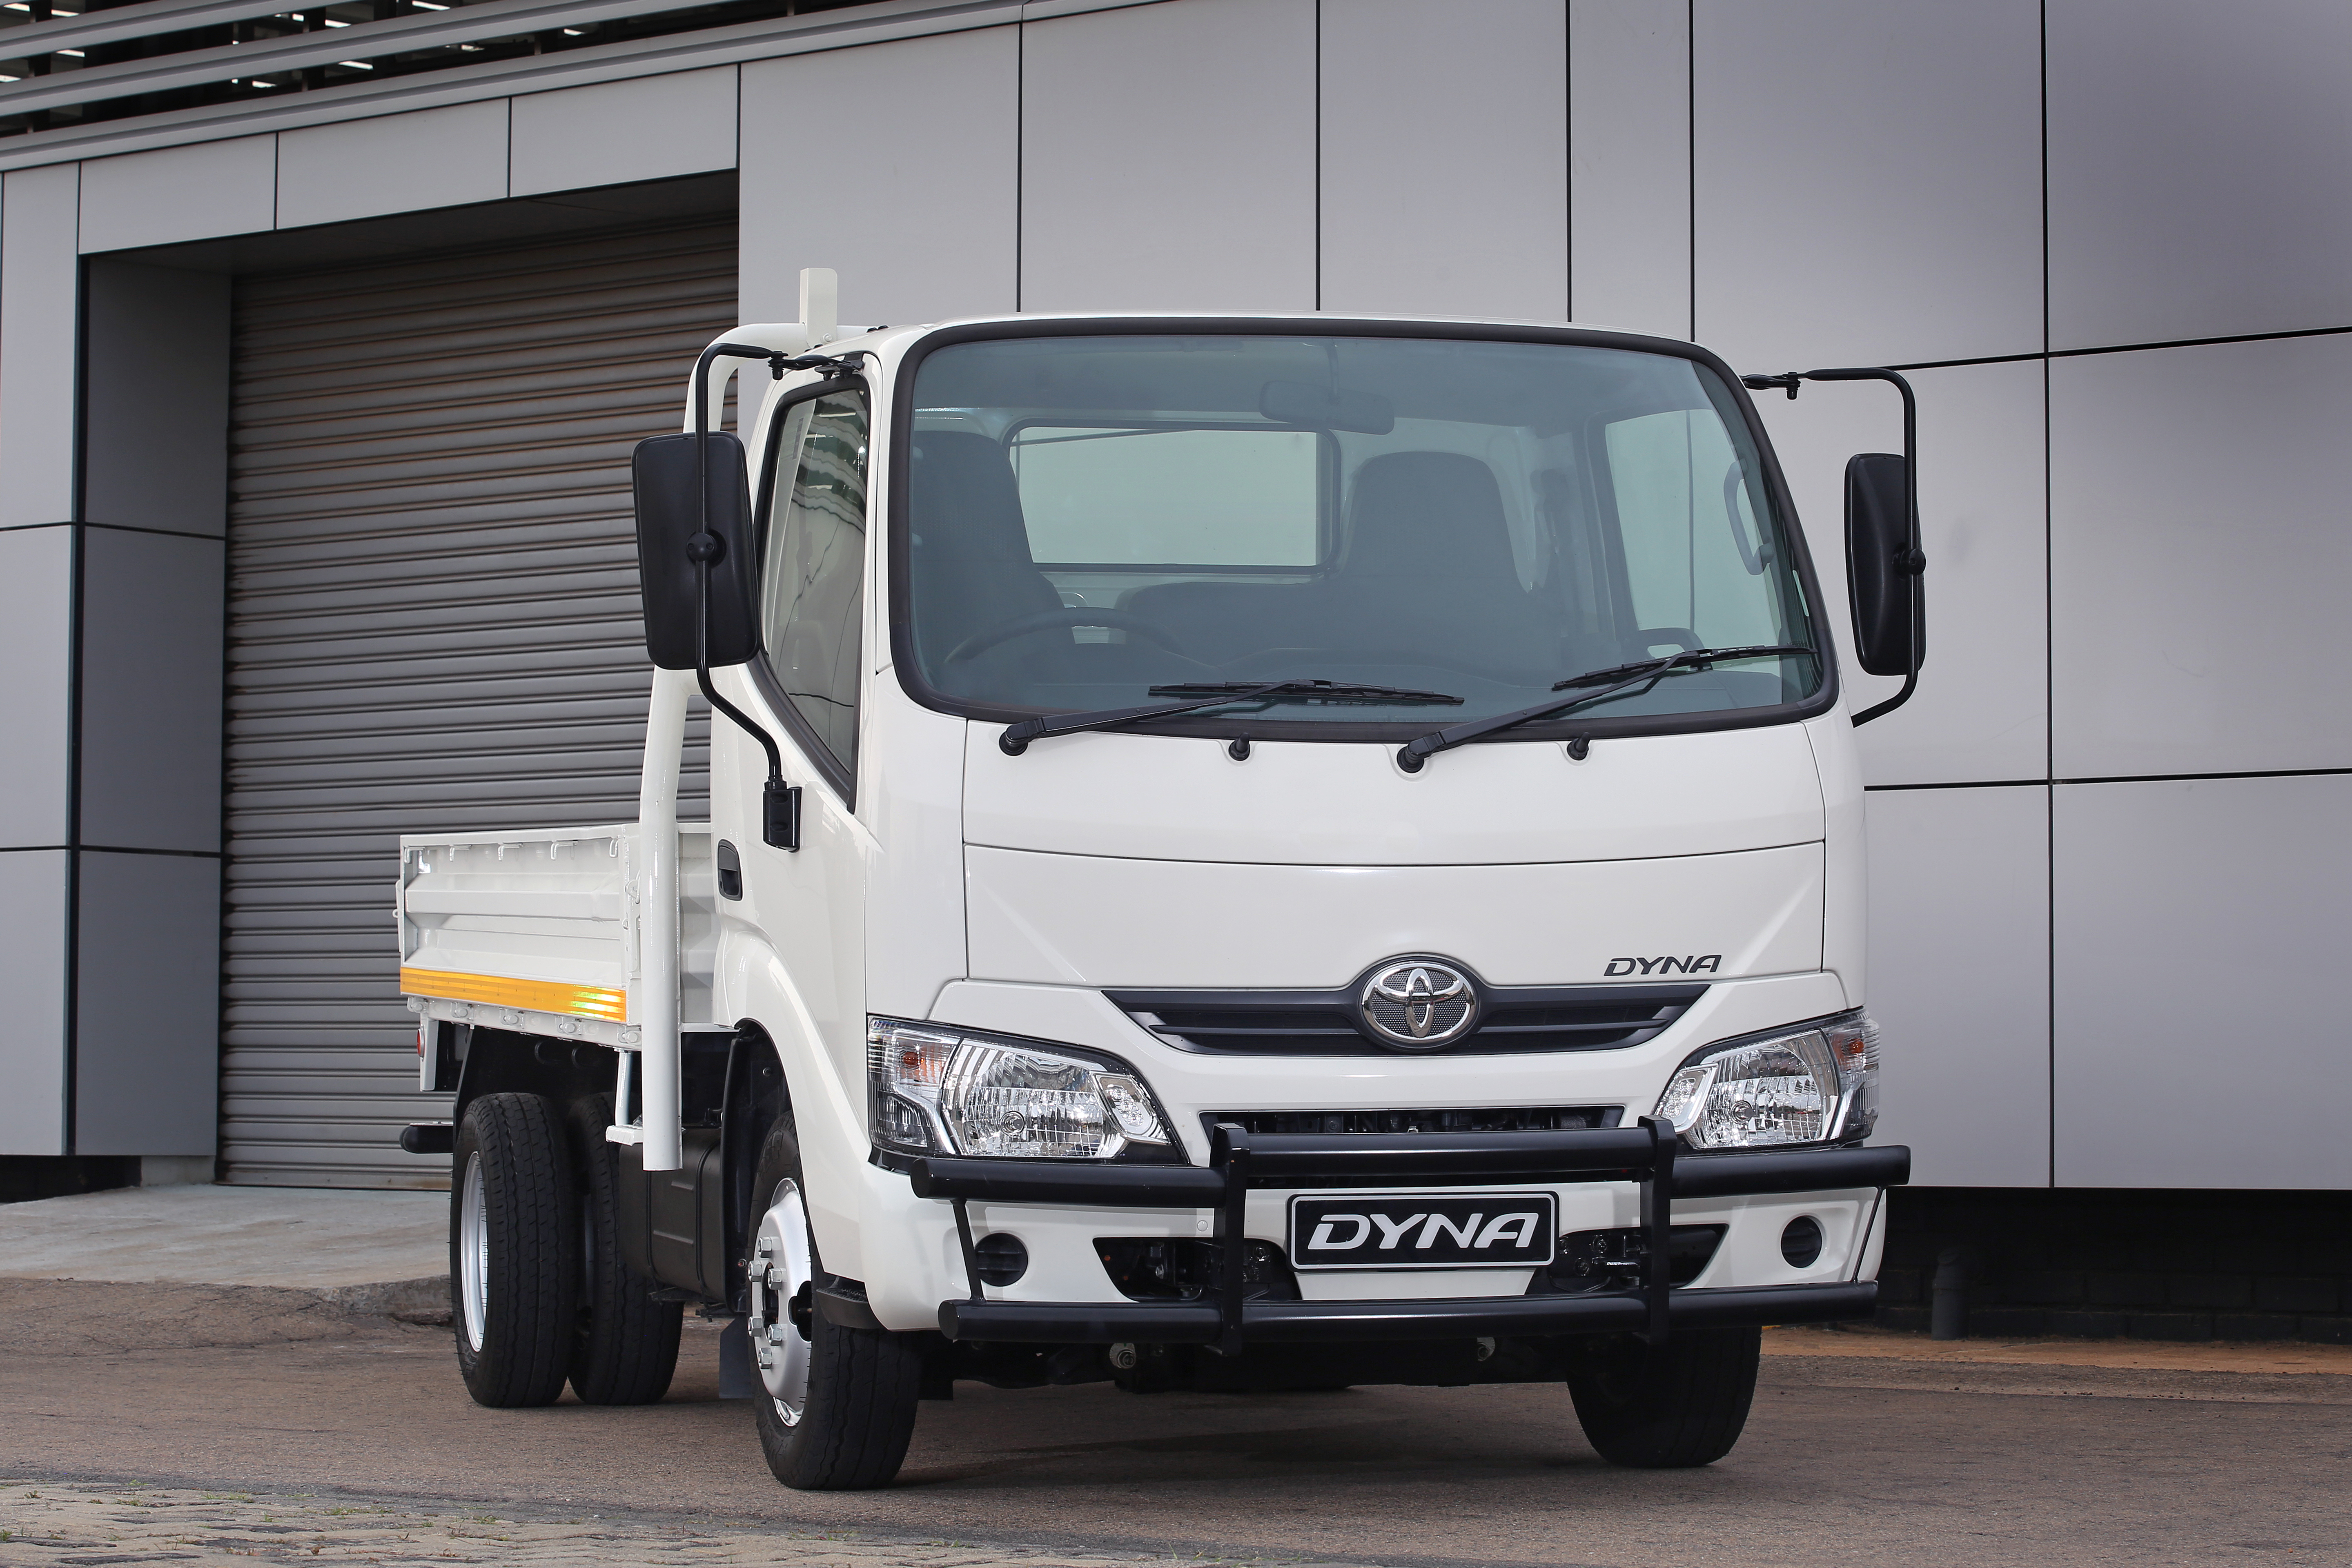 TOYOTA DYNA MOVES INTO LIGHT COMMERCIAL VEHICLE CATEGORY